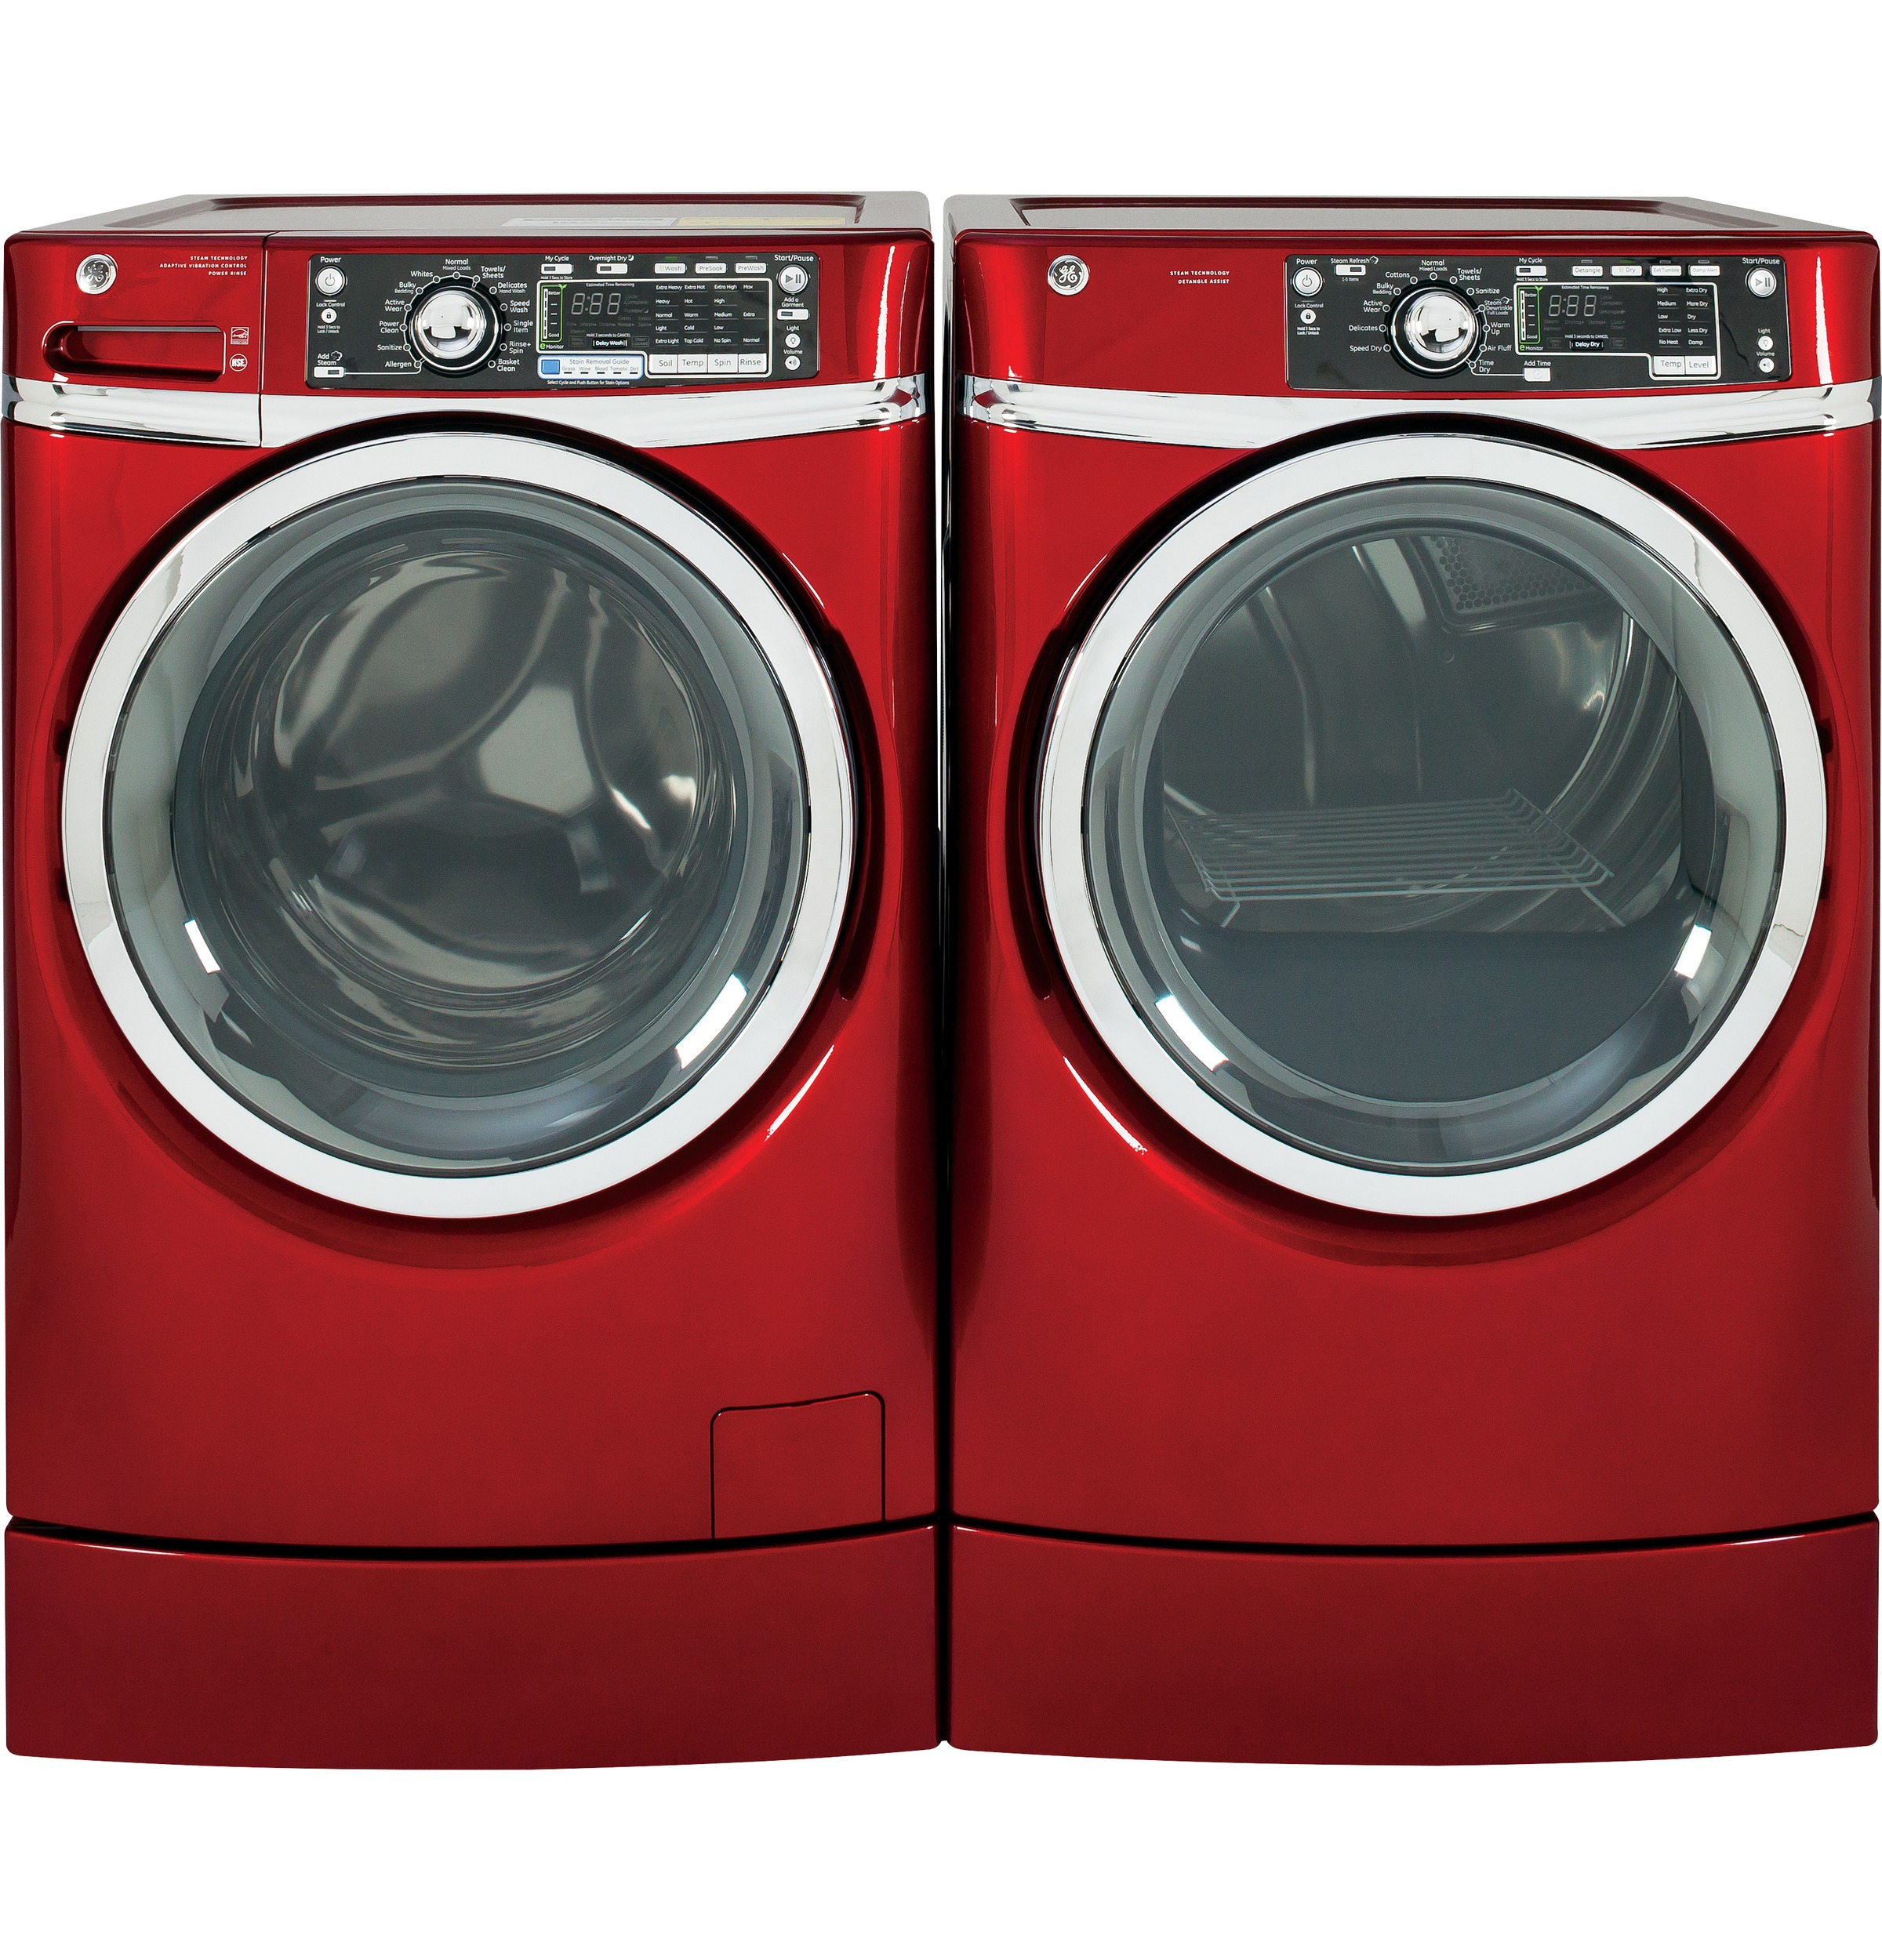 GE Appliances GFDR485GFRR 8.3 cu. ft. RightHeight™ Design Gas Dryer w/ Steam - Red